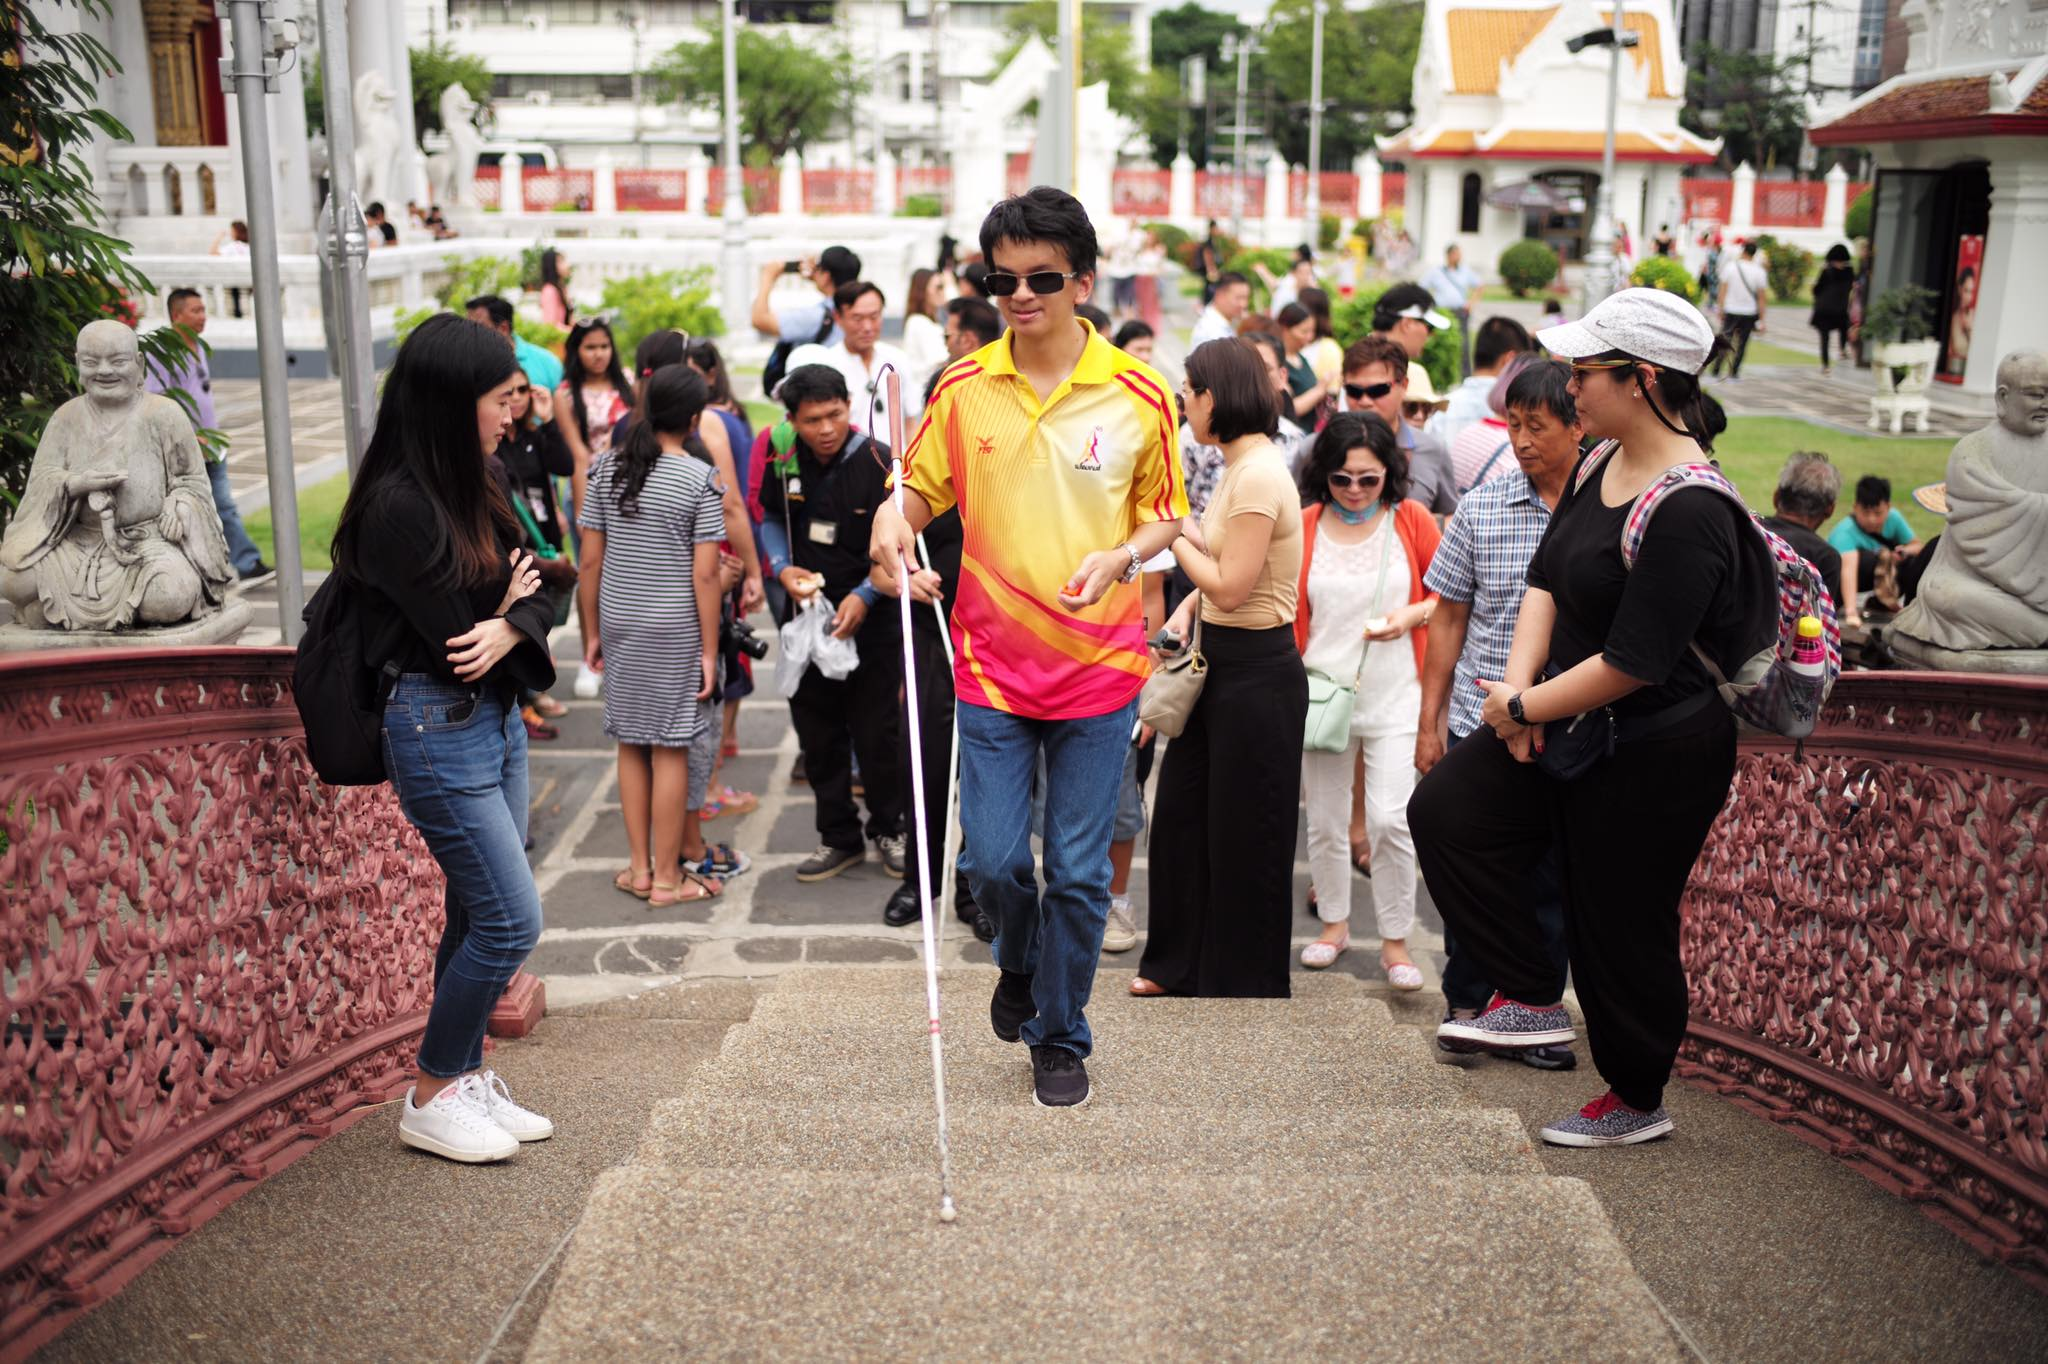 Blind Visioneer trainee coaches use FlashSonar echolocation and a long Perception Cane to navigate a temple in Bangkok, Thailand.